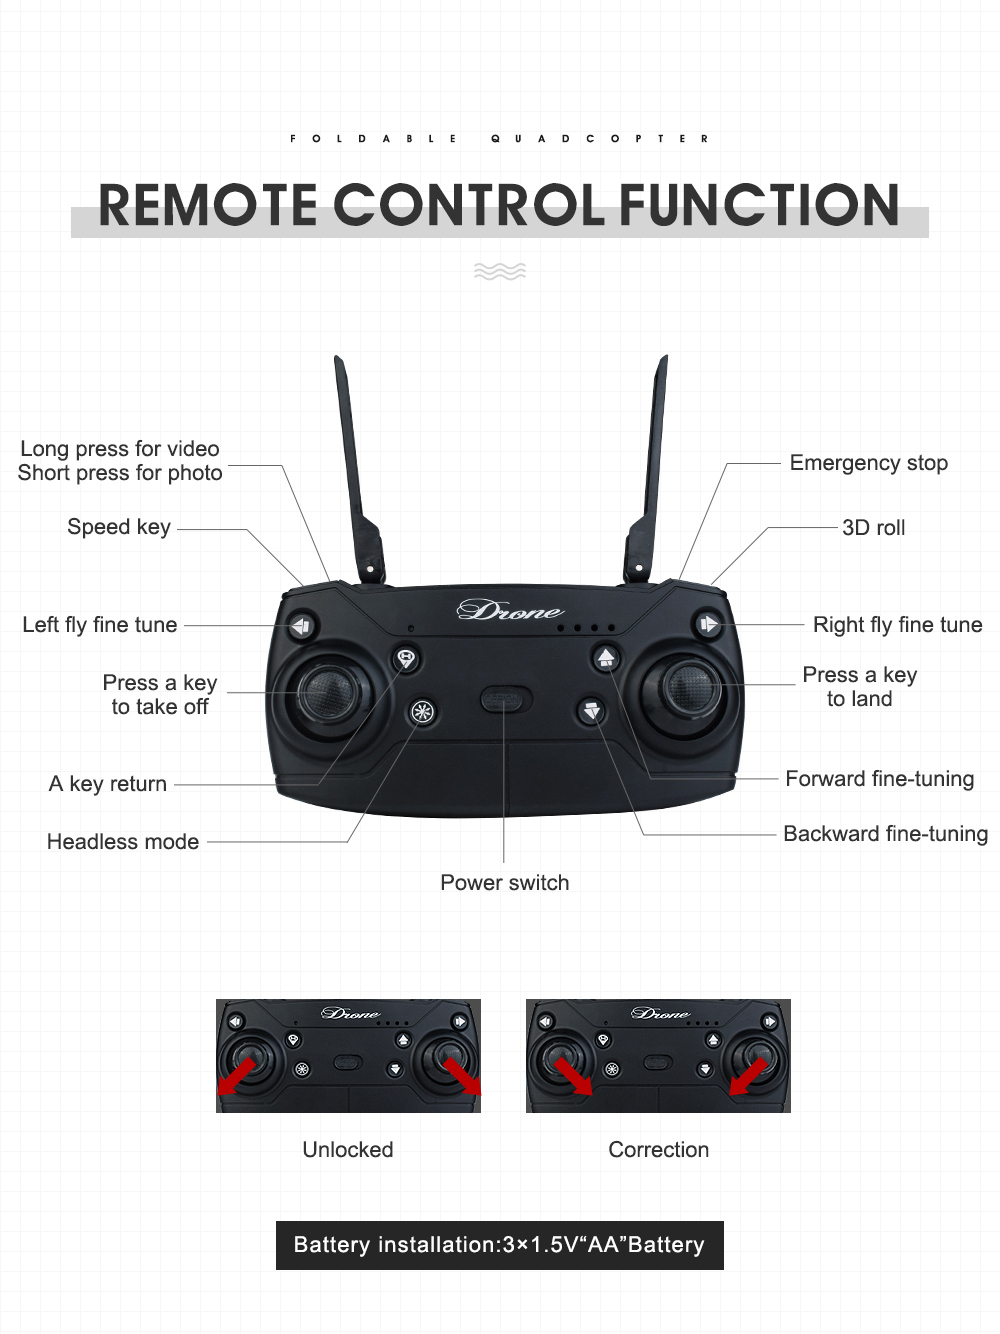 17.New 2.4Ghz 4ch foldable FPV rc drone with 2MP wide angle wifi camera